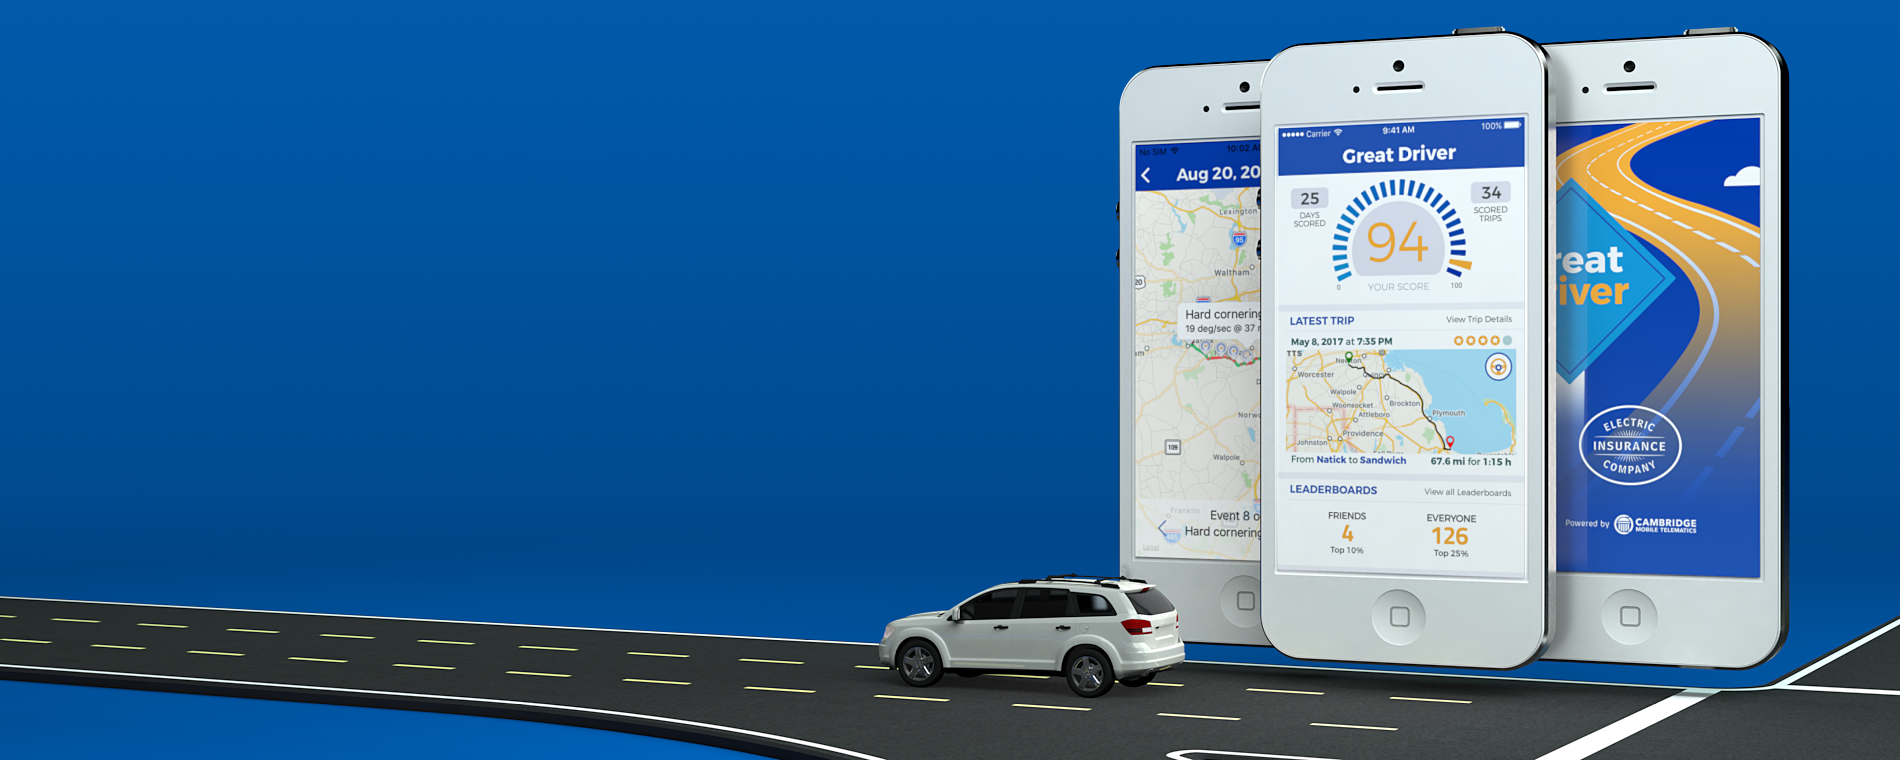 Save 5% -10% on your car insurance with the Great Driver app